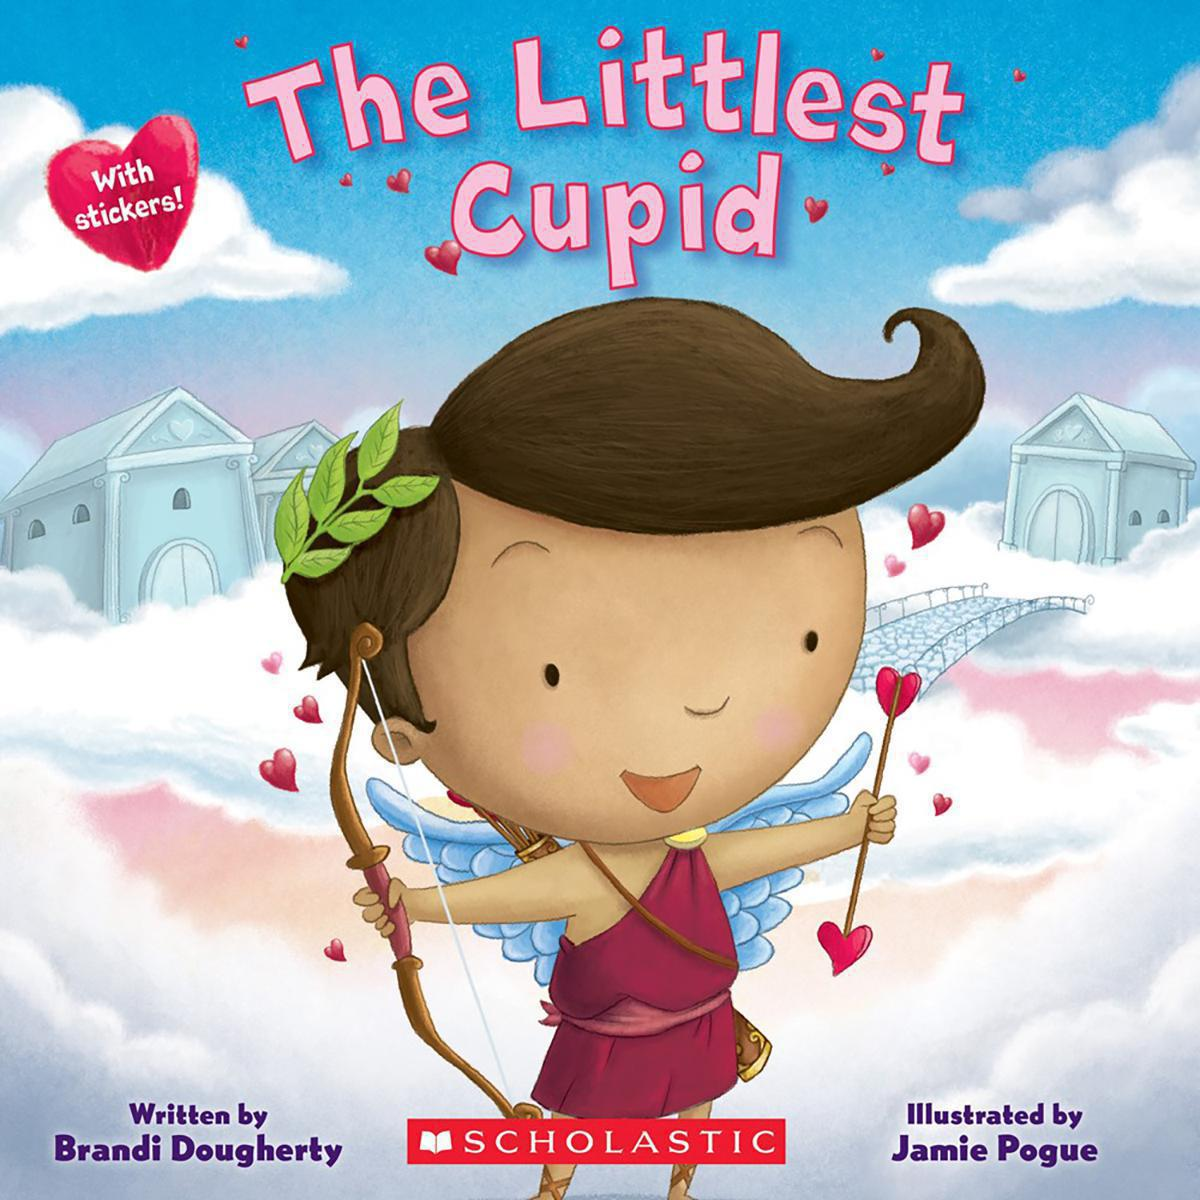 The Littlest Cupid